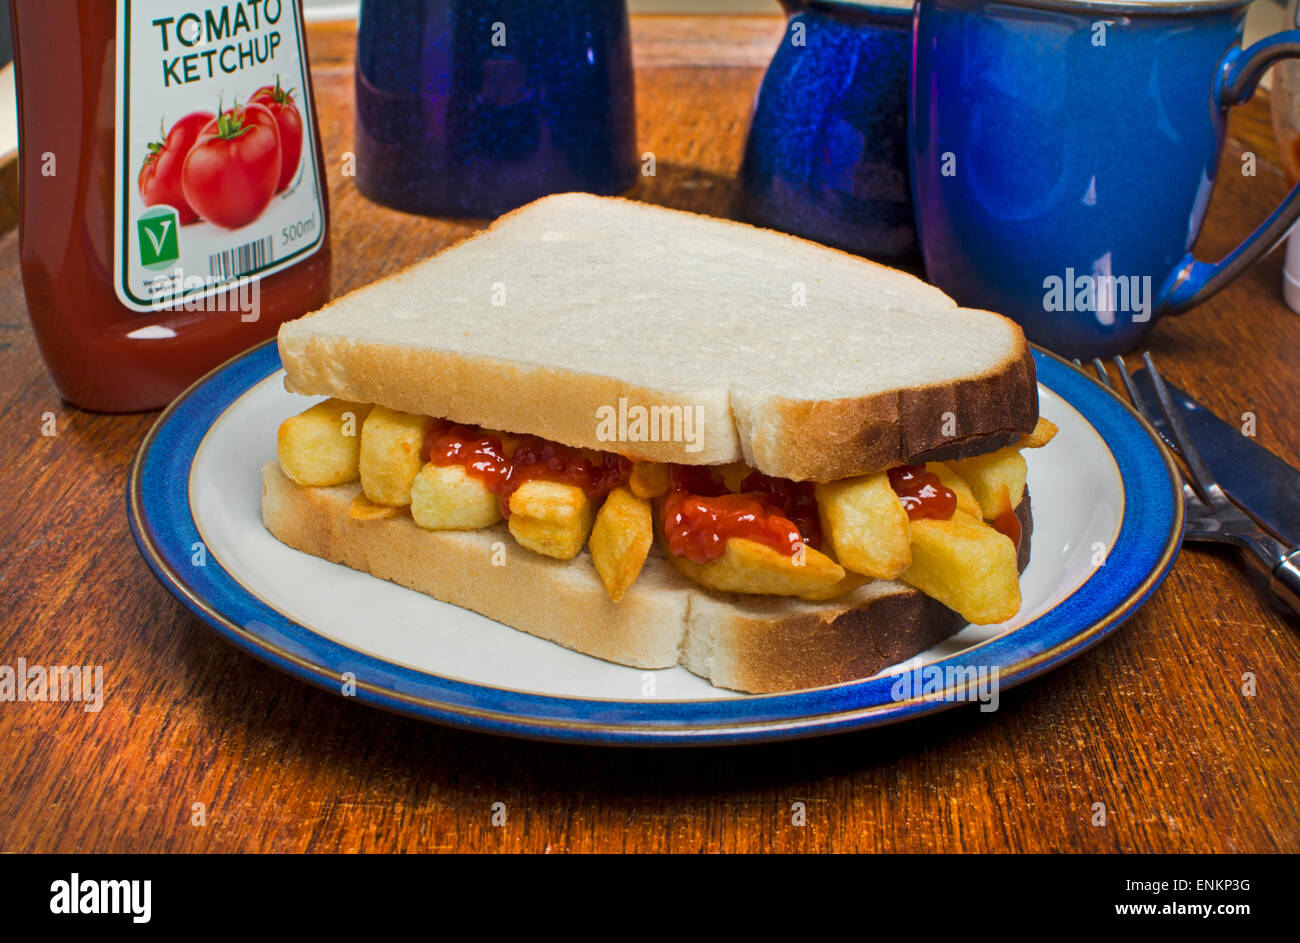 A potato chips sandwich, commonly known as a chip butty in the UK, with tomato ketchup sauce - Stock Image